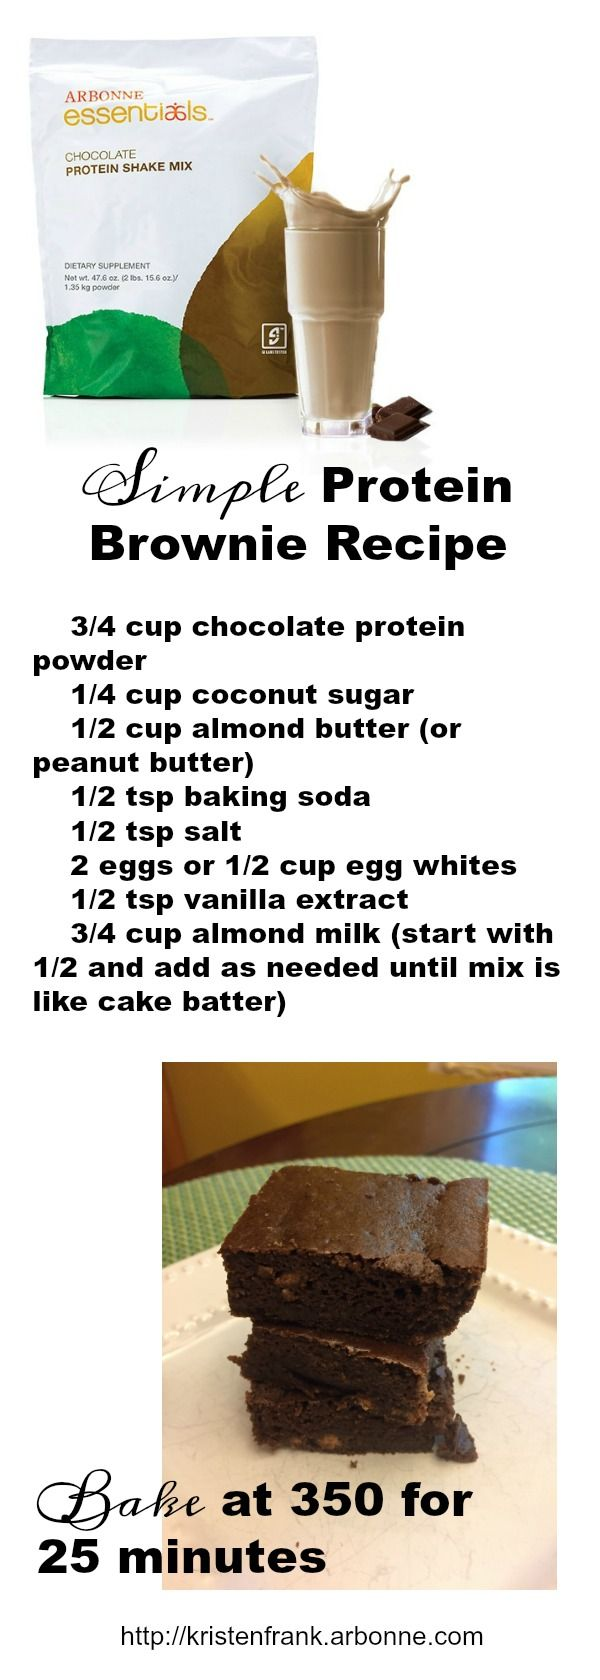 Delicious protein brownies using Arbonne Essentials Chocolate Protein! #arbonne ID#22815960